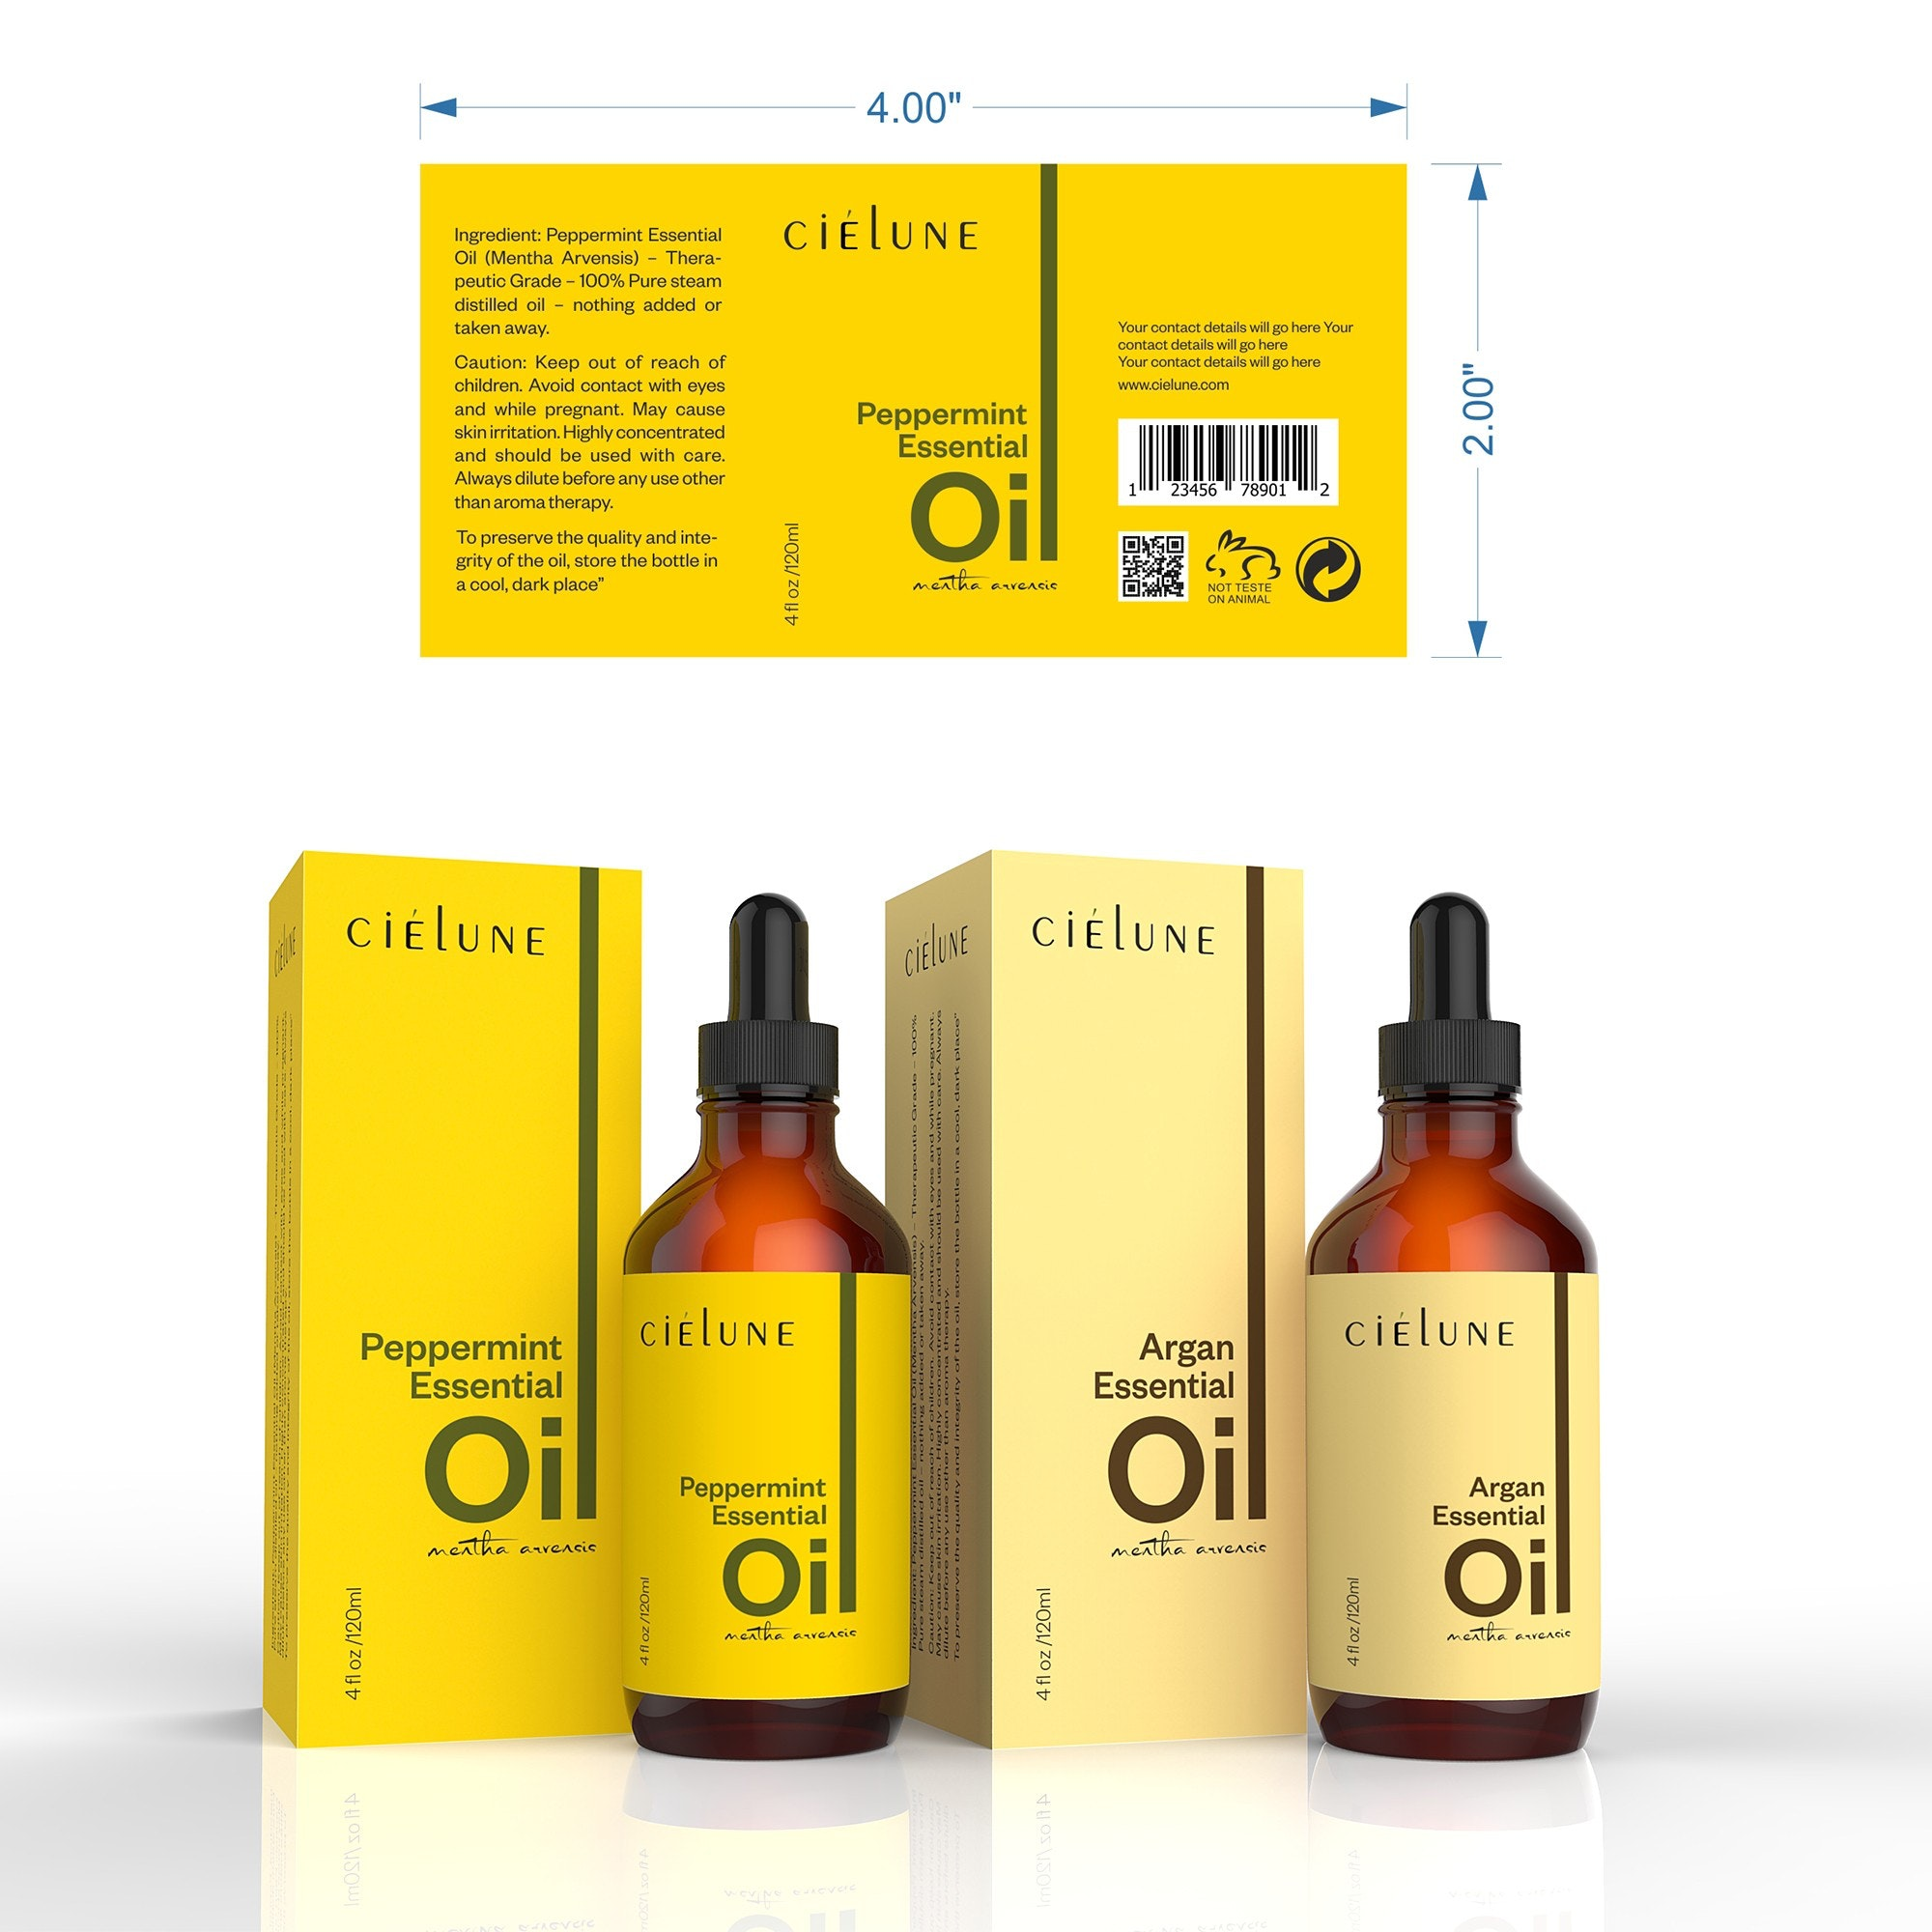 Cielune Argan Oil label